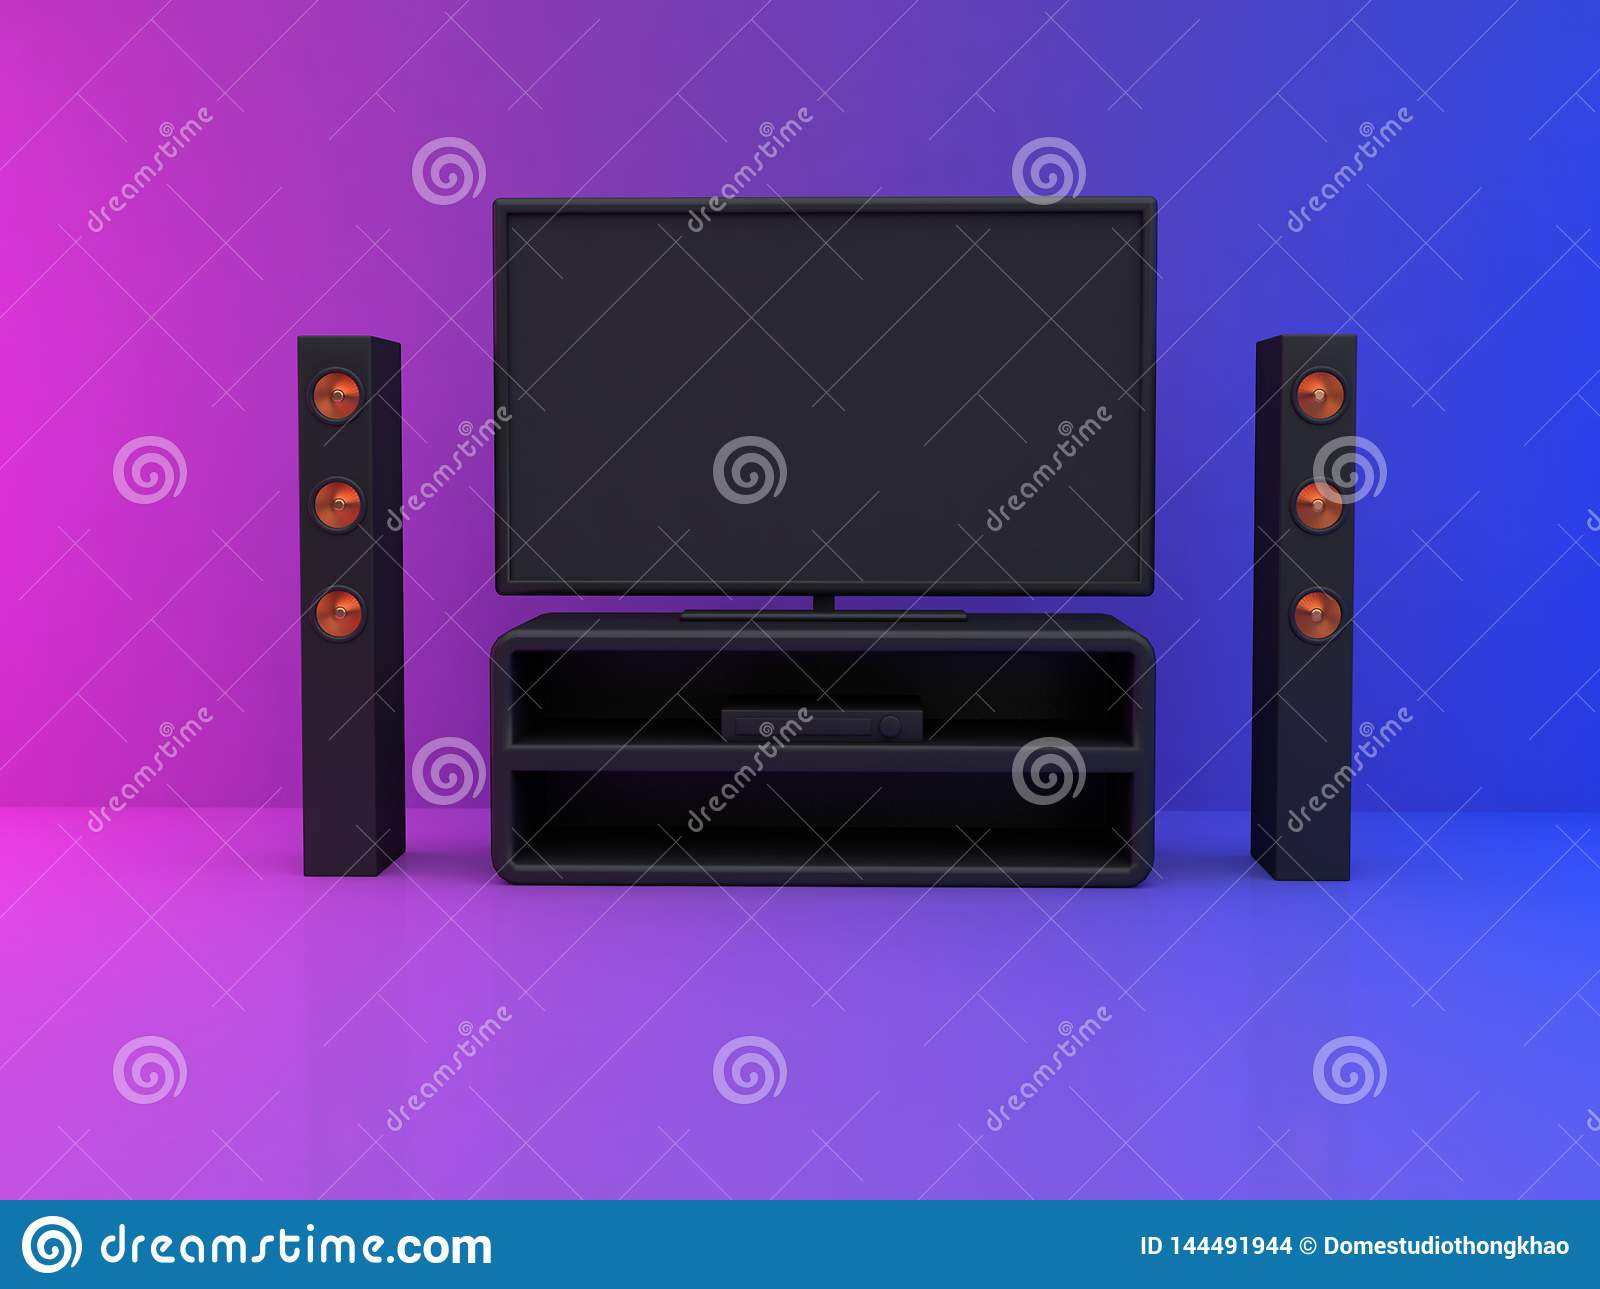 television monitor in room pink blue scene 3d render home theater,entertainment concept